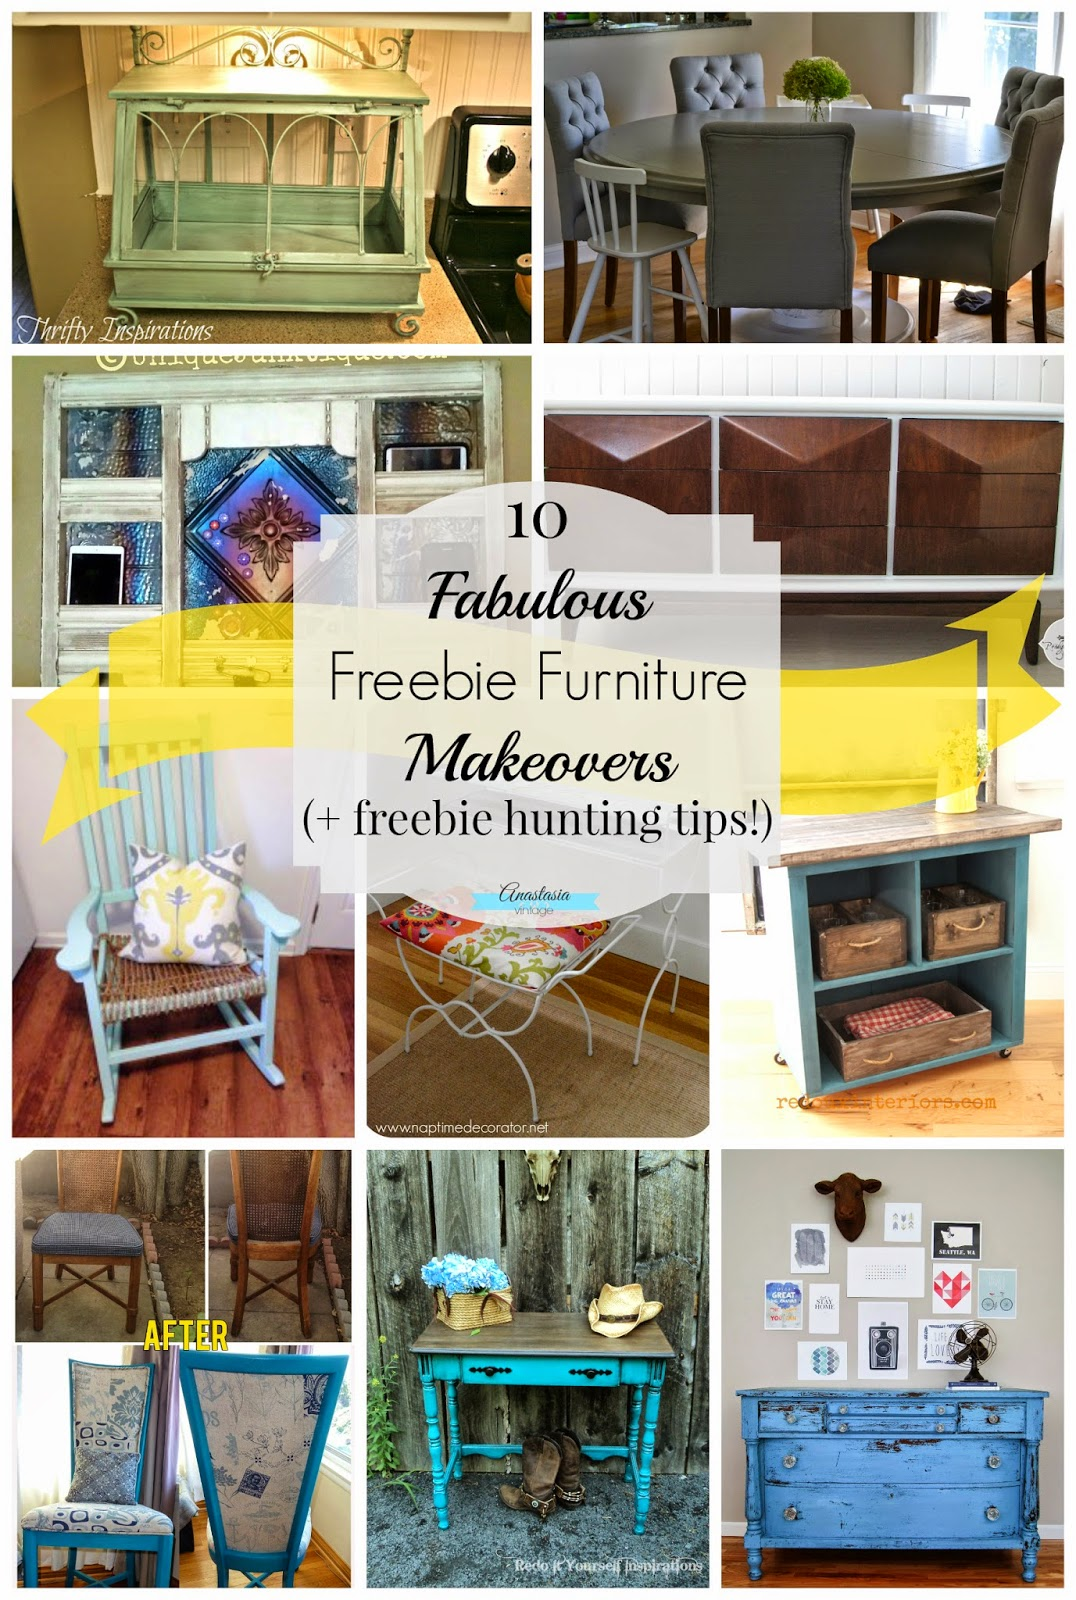 10 Fabulous Trash-to-Treasure Freebie Furniture Makeovers Anastasia Vintage